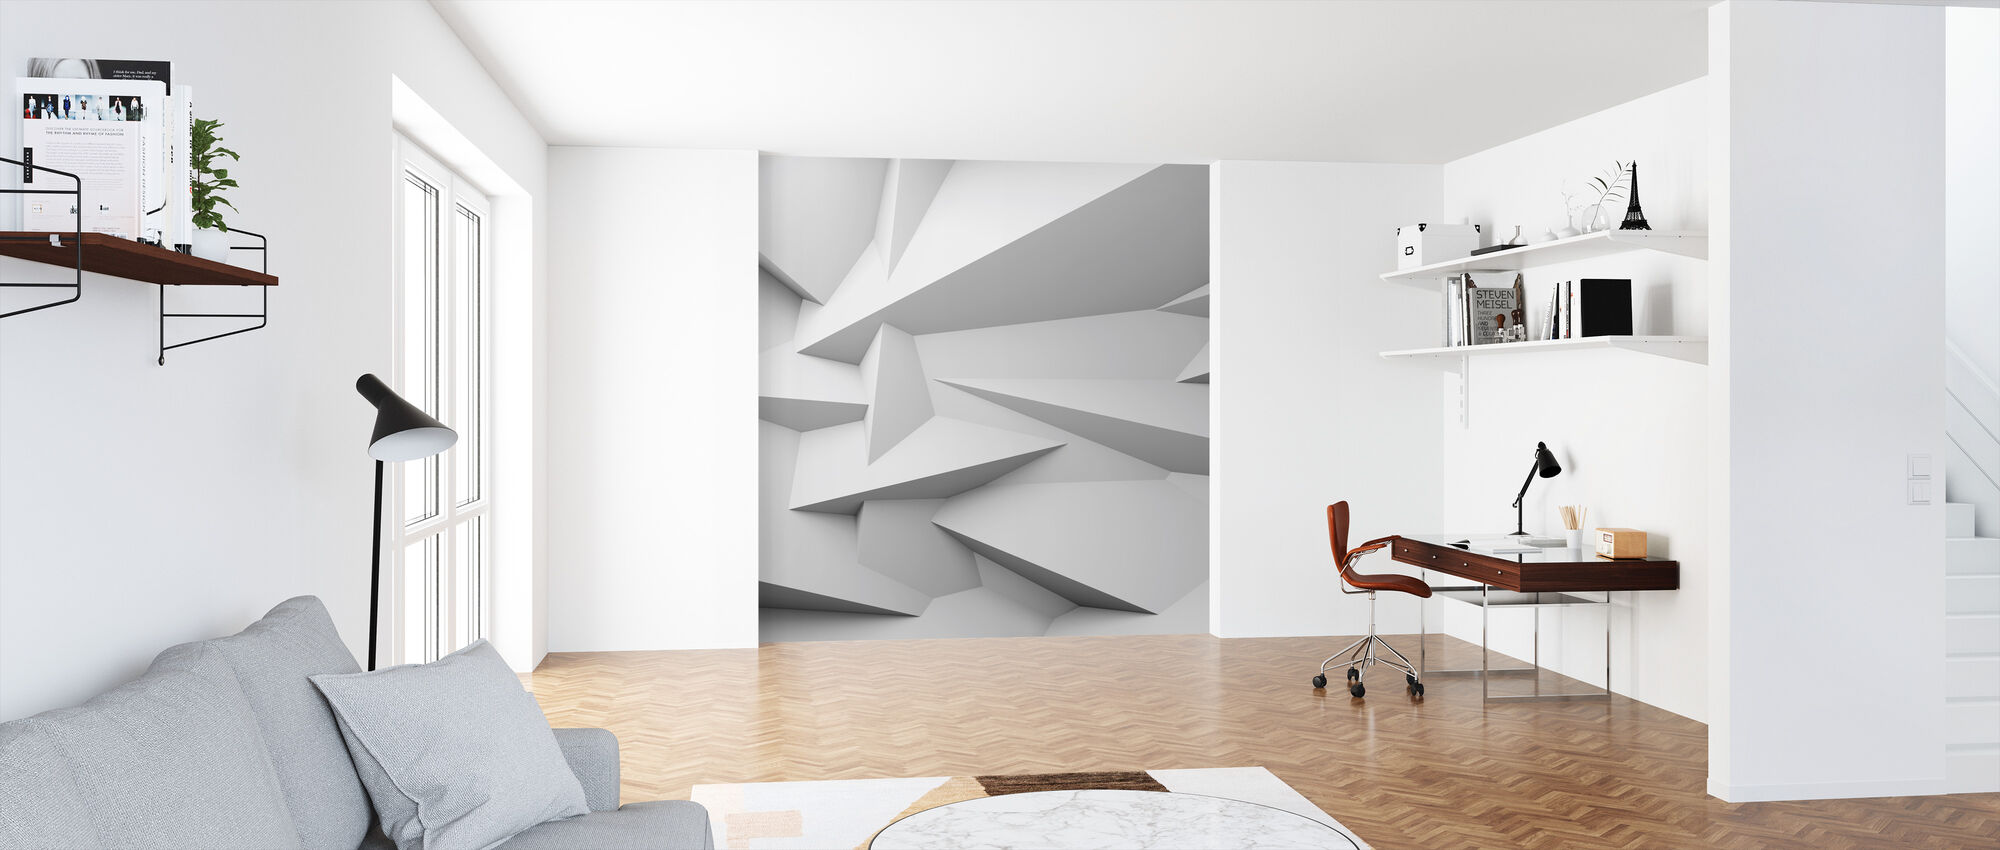 Faceted 3D Wall - Wallpaper - Office